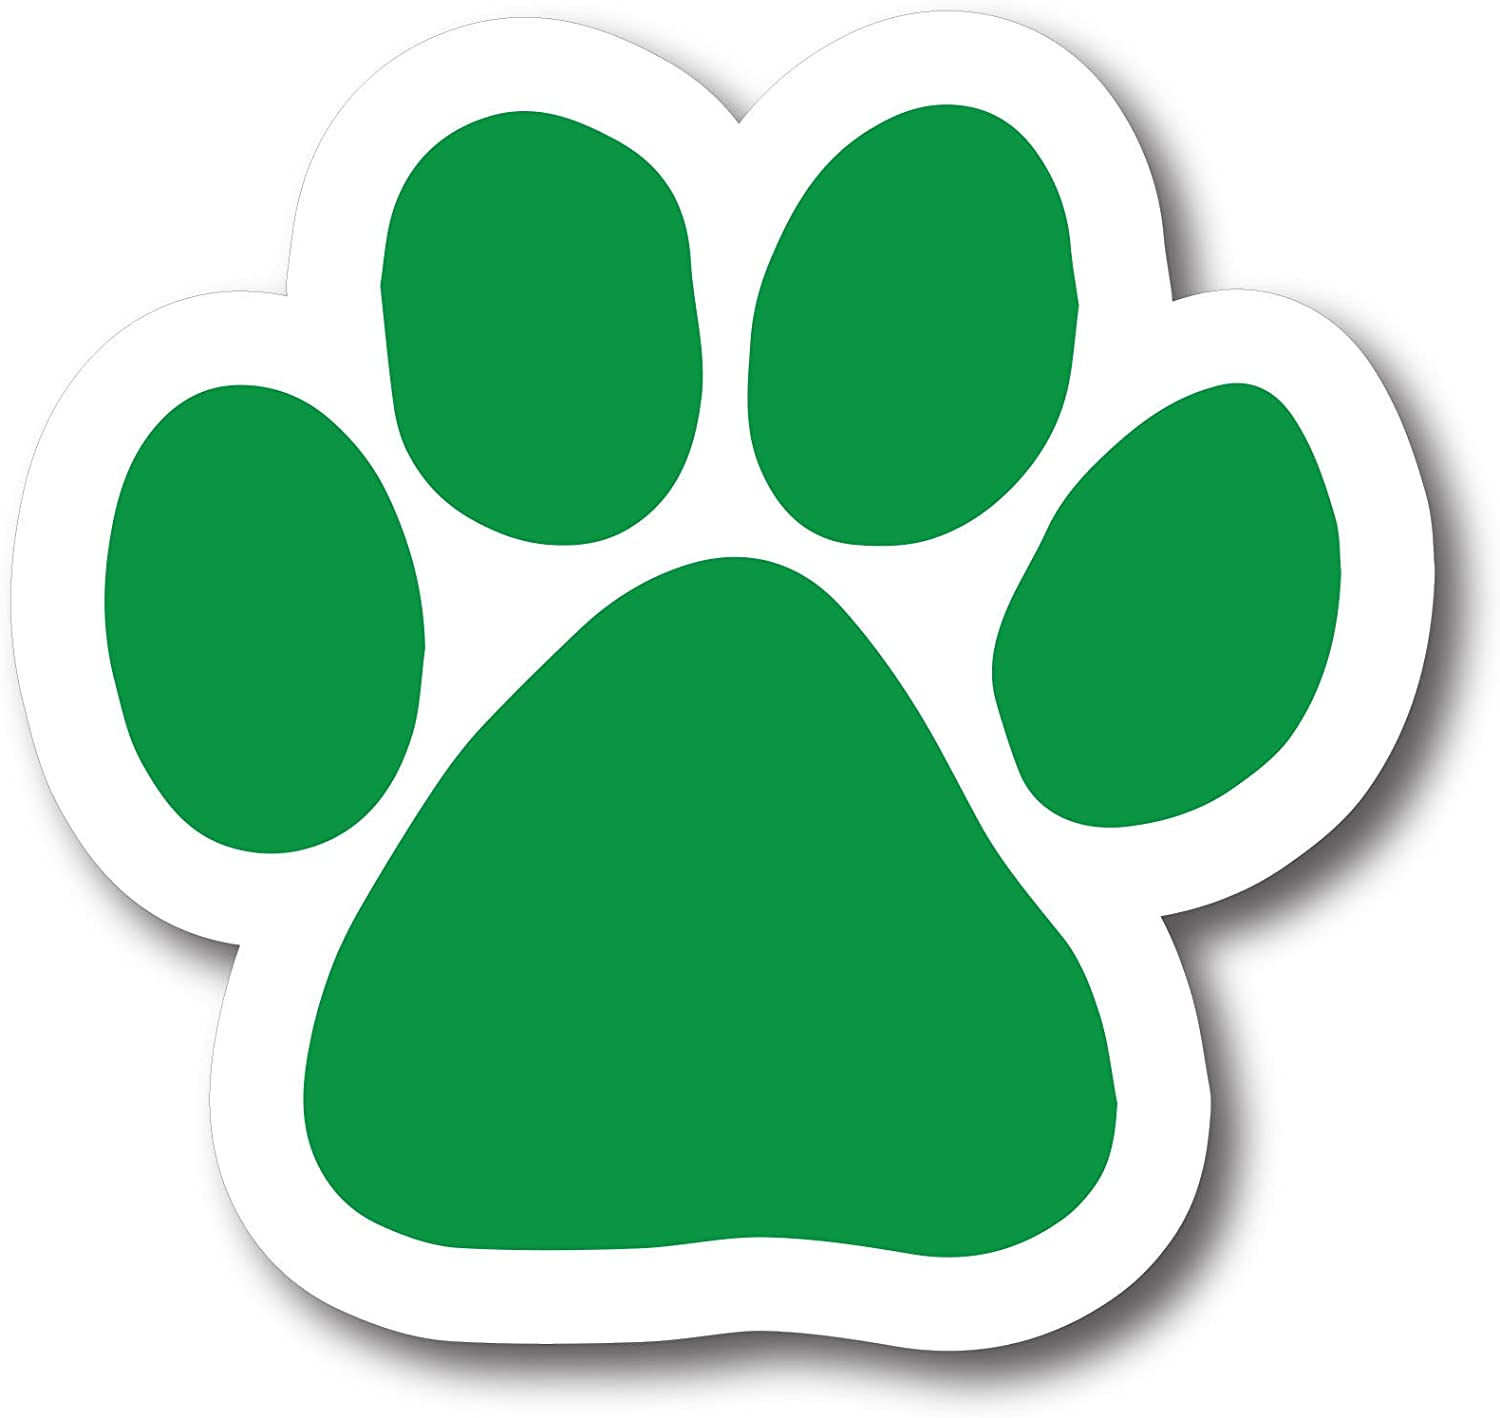 Magnet Me Up Blank Green Pawprint Car Magnet Paw Print Auto Truck Decal Magnet